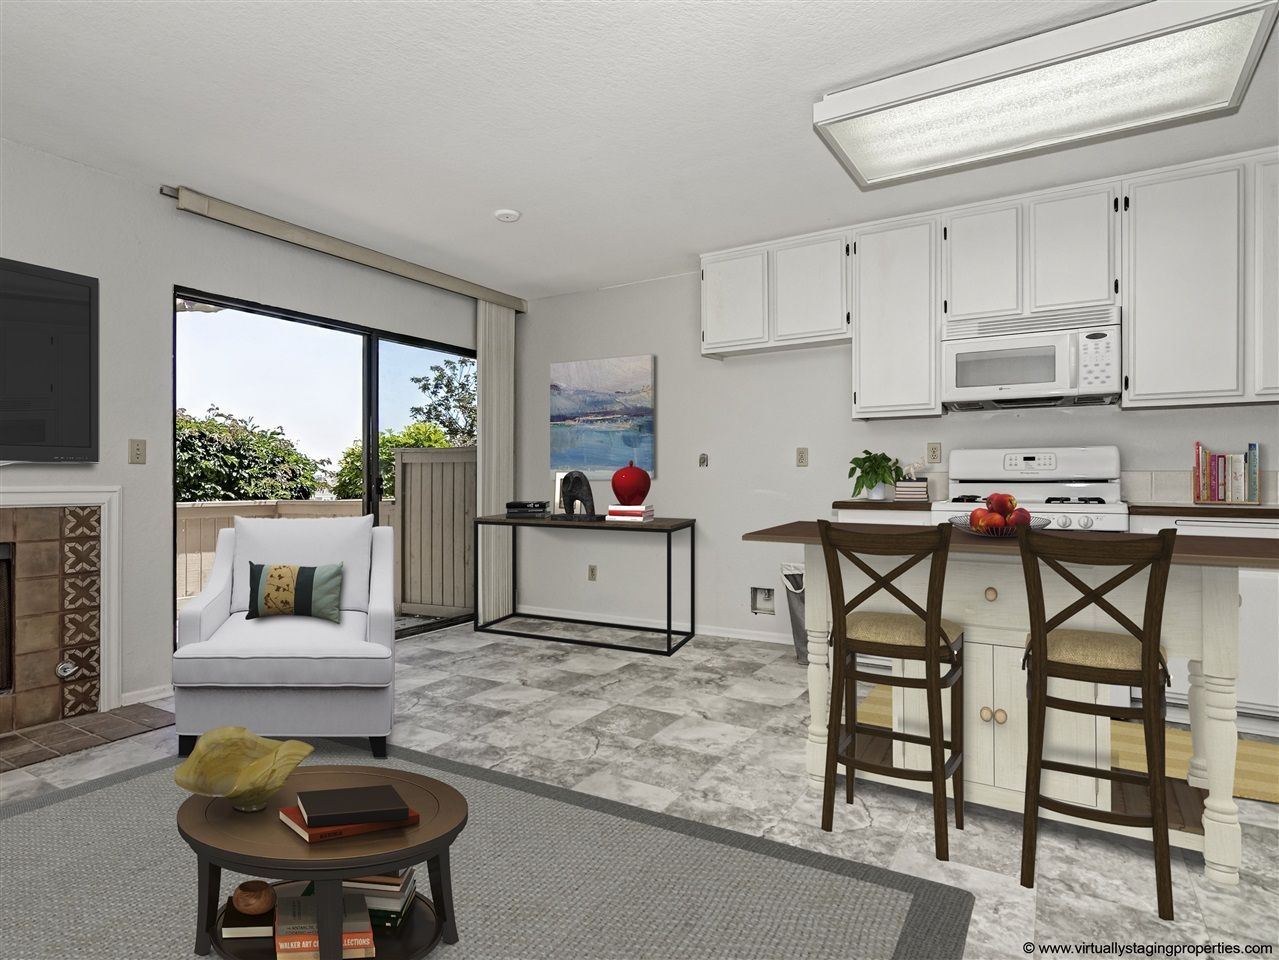 Main Photo: CARLSBAD WEST Townhome for sale : 2 bedrooms : 6995 Carnation Dr in Carlsbad